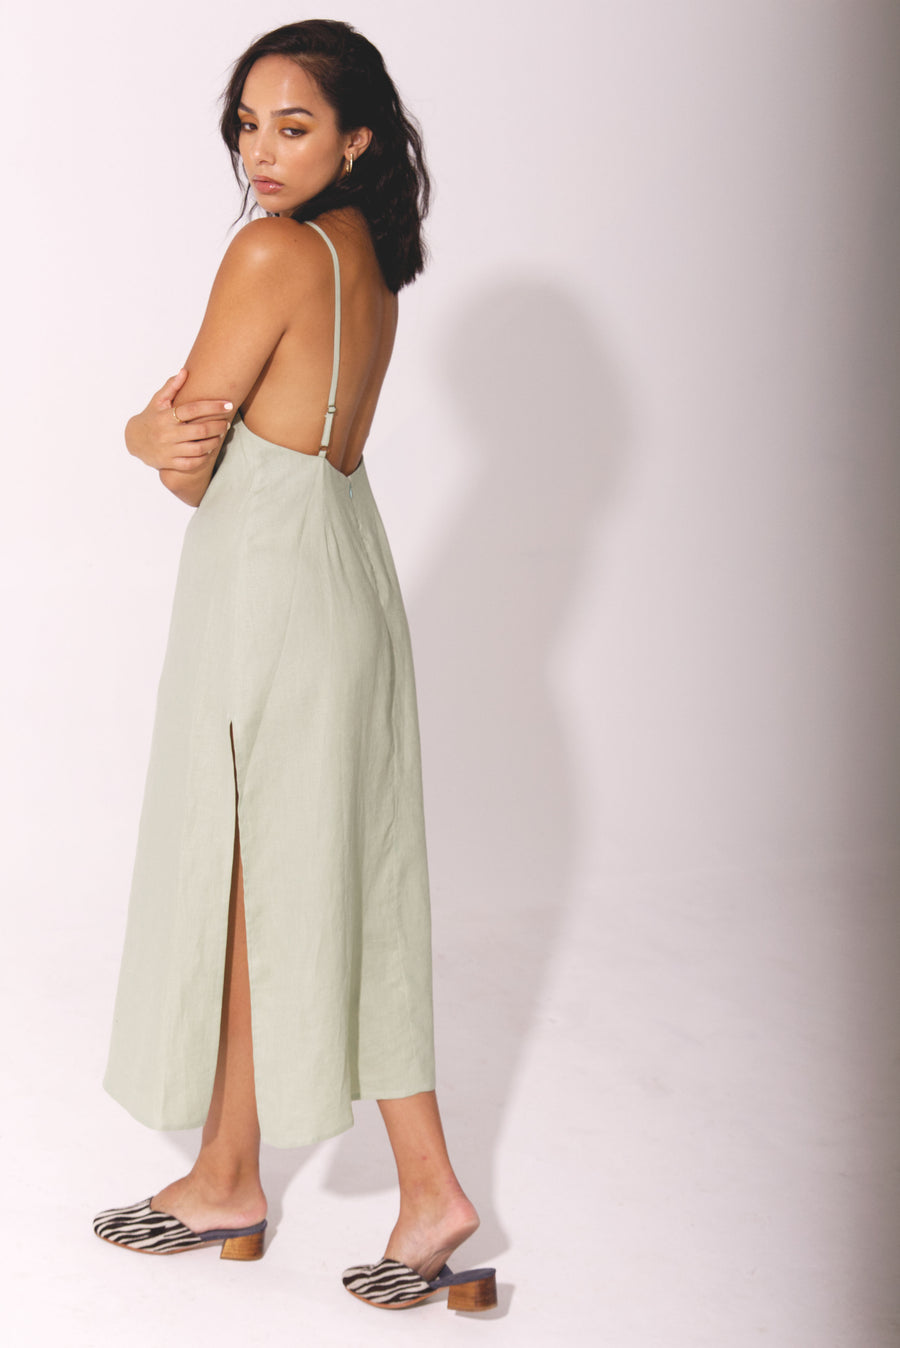 The Full Length Slip Dress in Basil